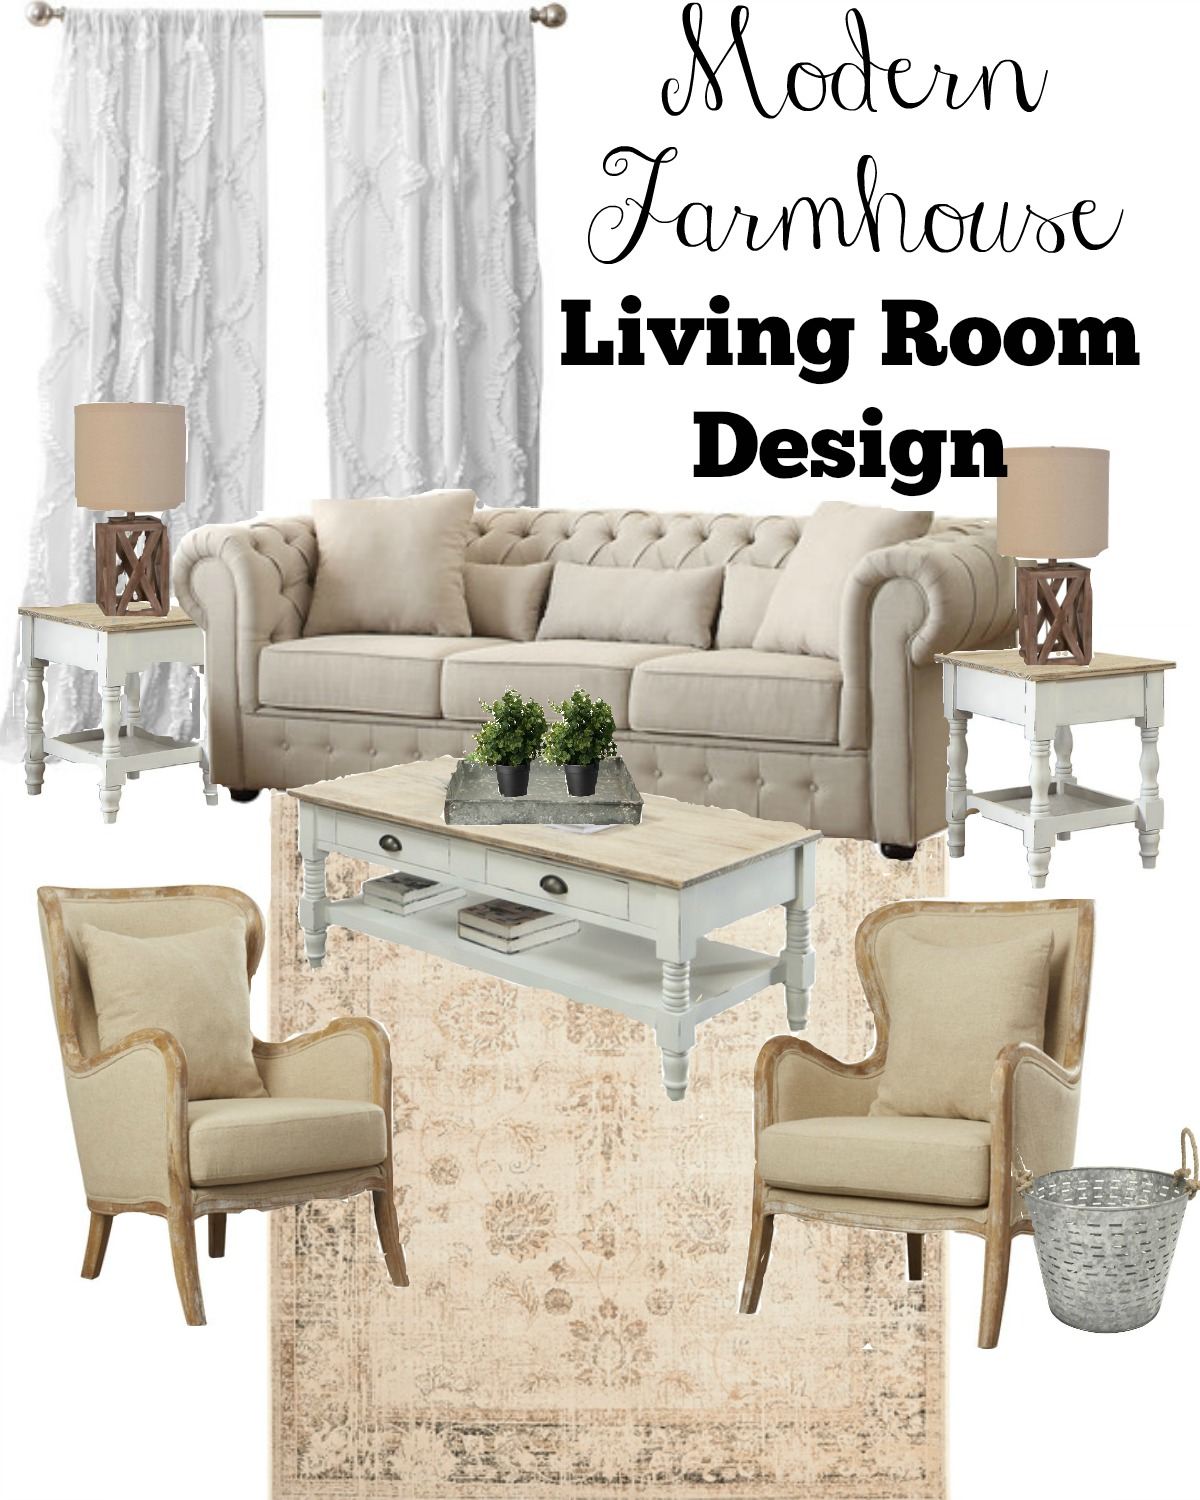 Modern Farmhouse Living Room: 3 Key Tips For A Farmhouse Style Living Room